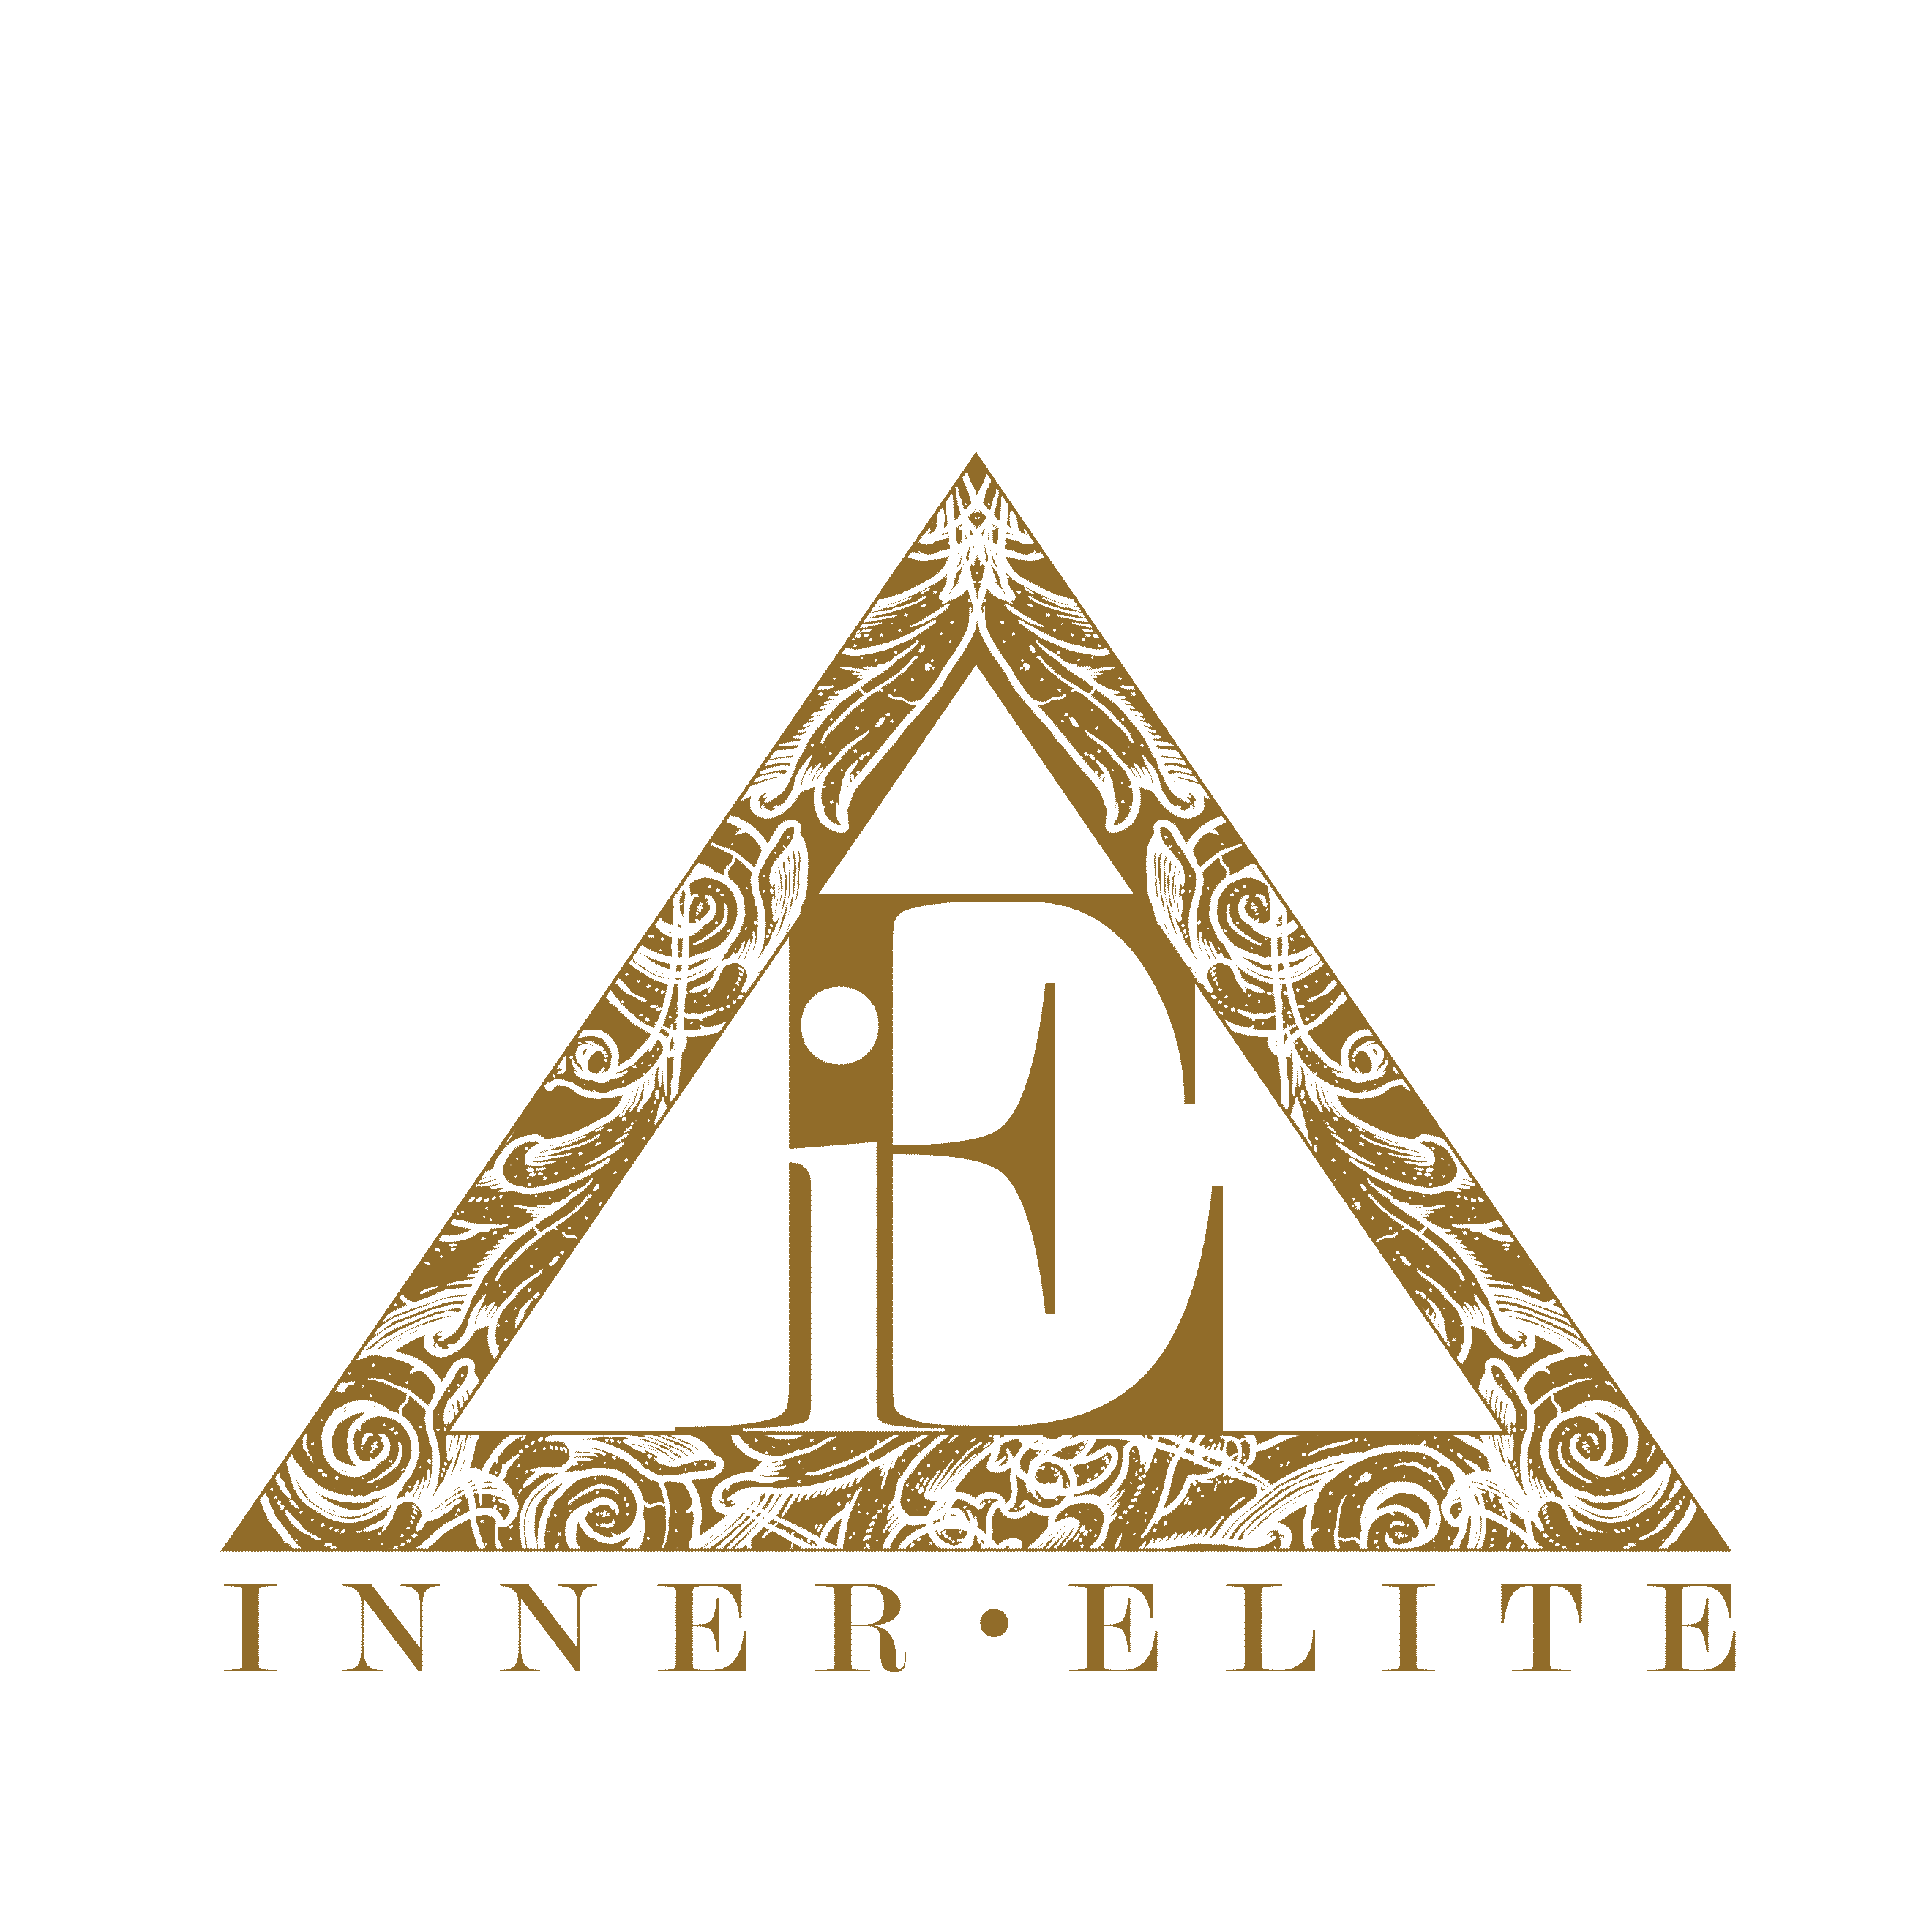 The Inner Elite logo